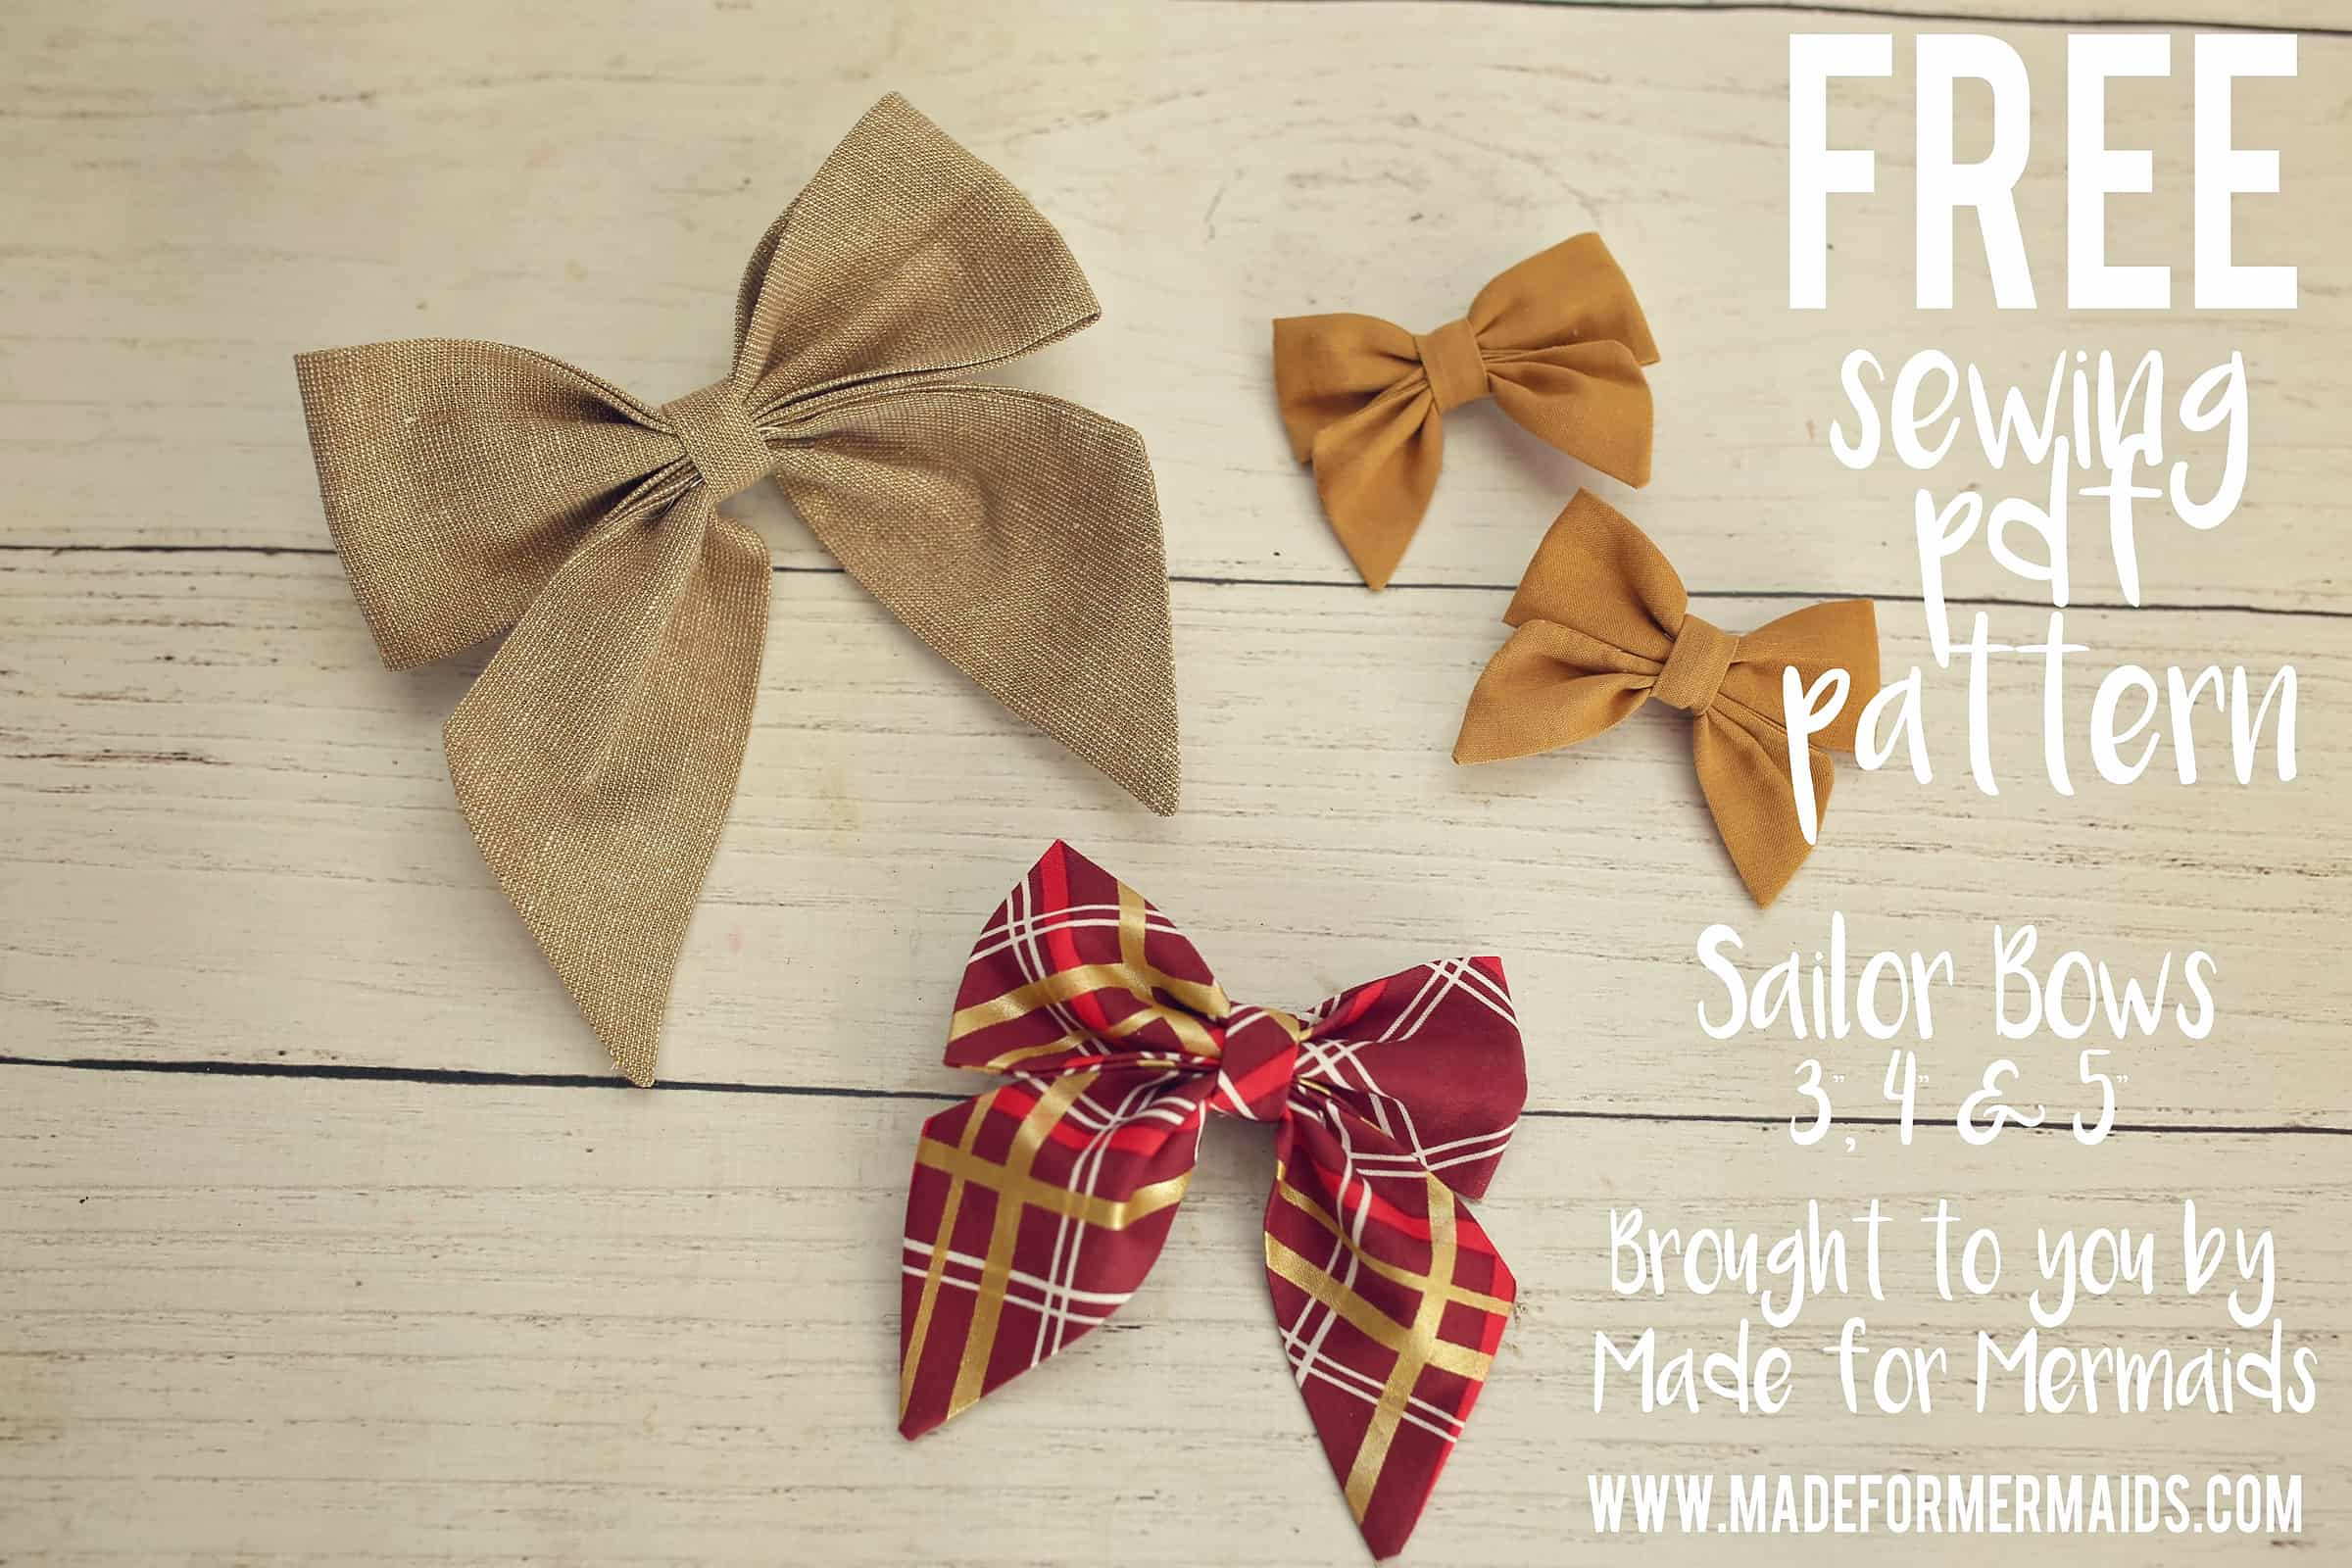 Free Pdf Pattern Sydney Sailor Bows In 3 Sizes